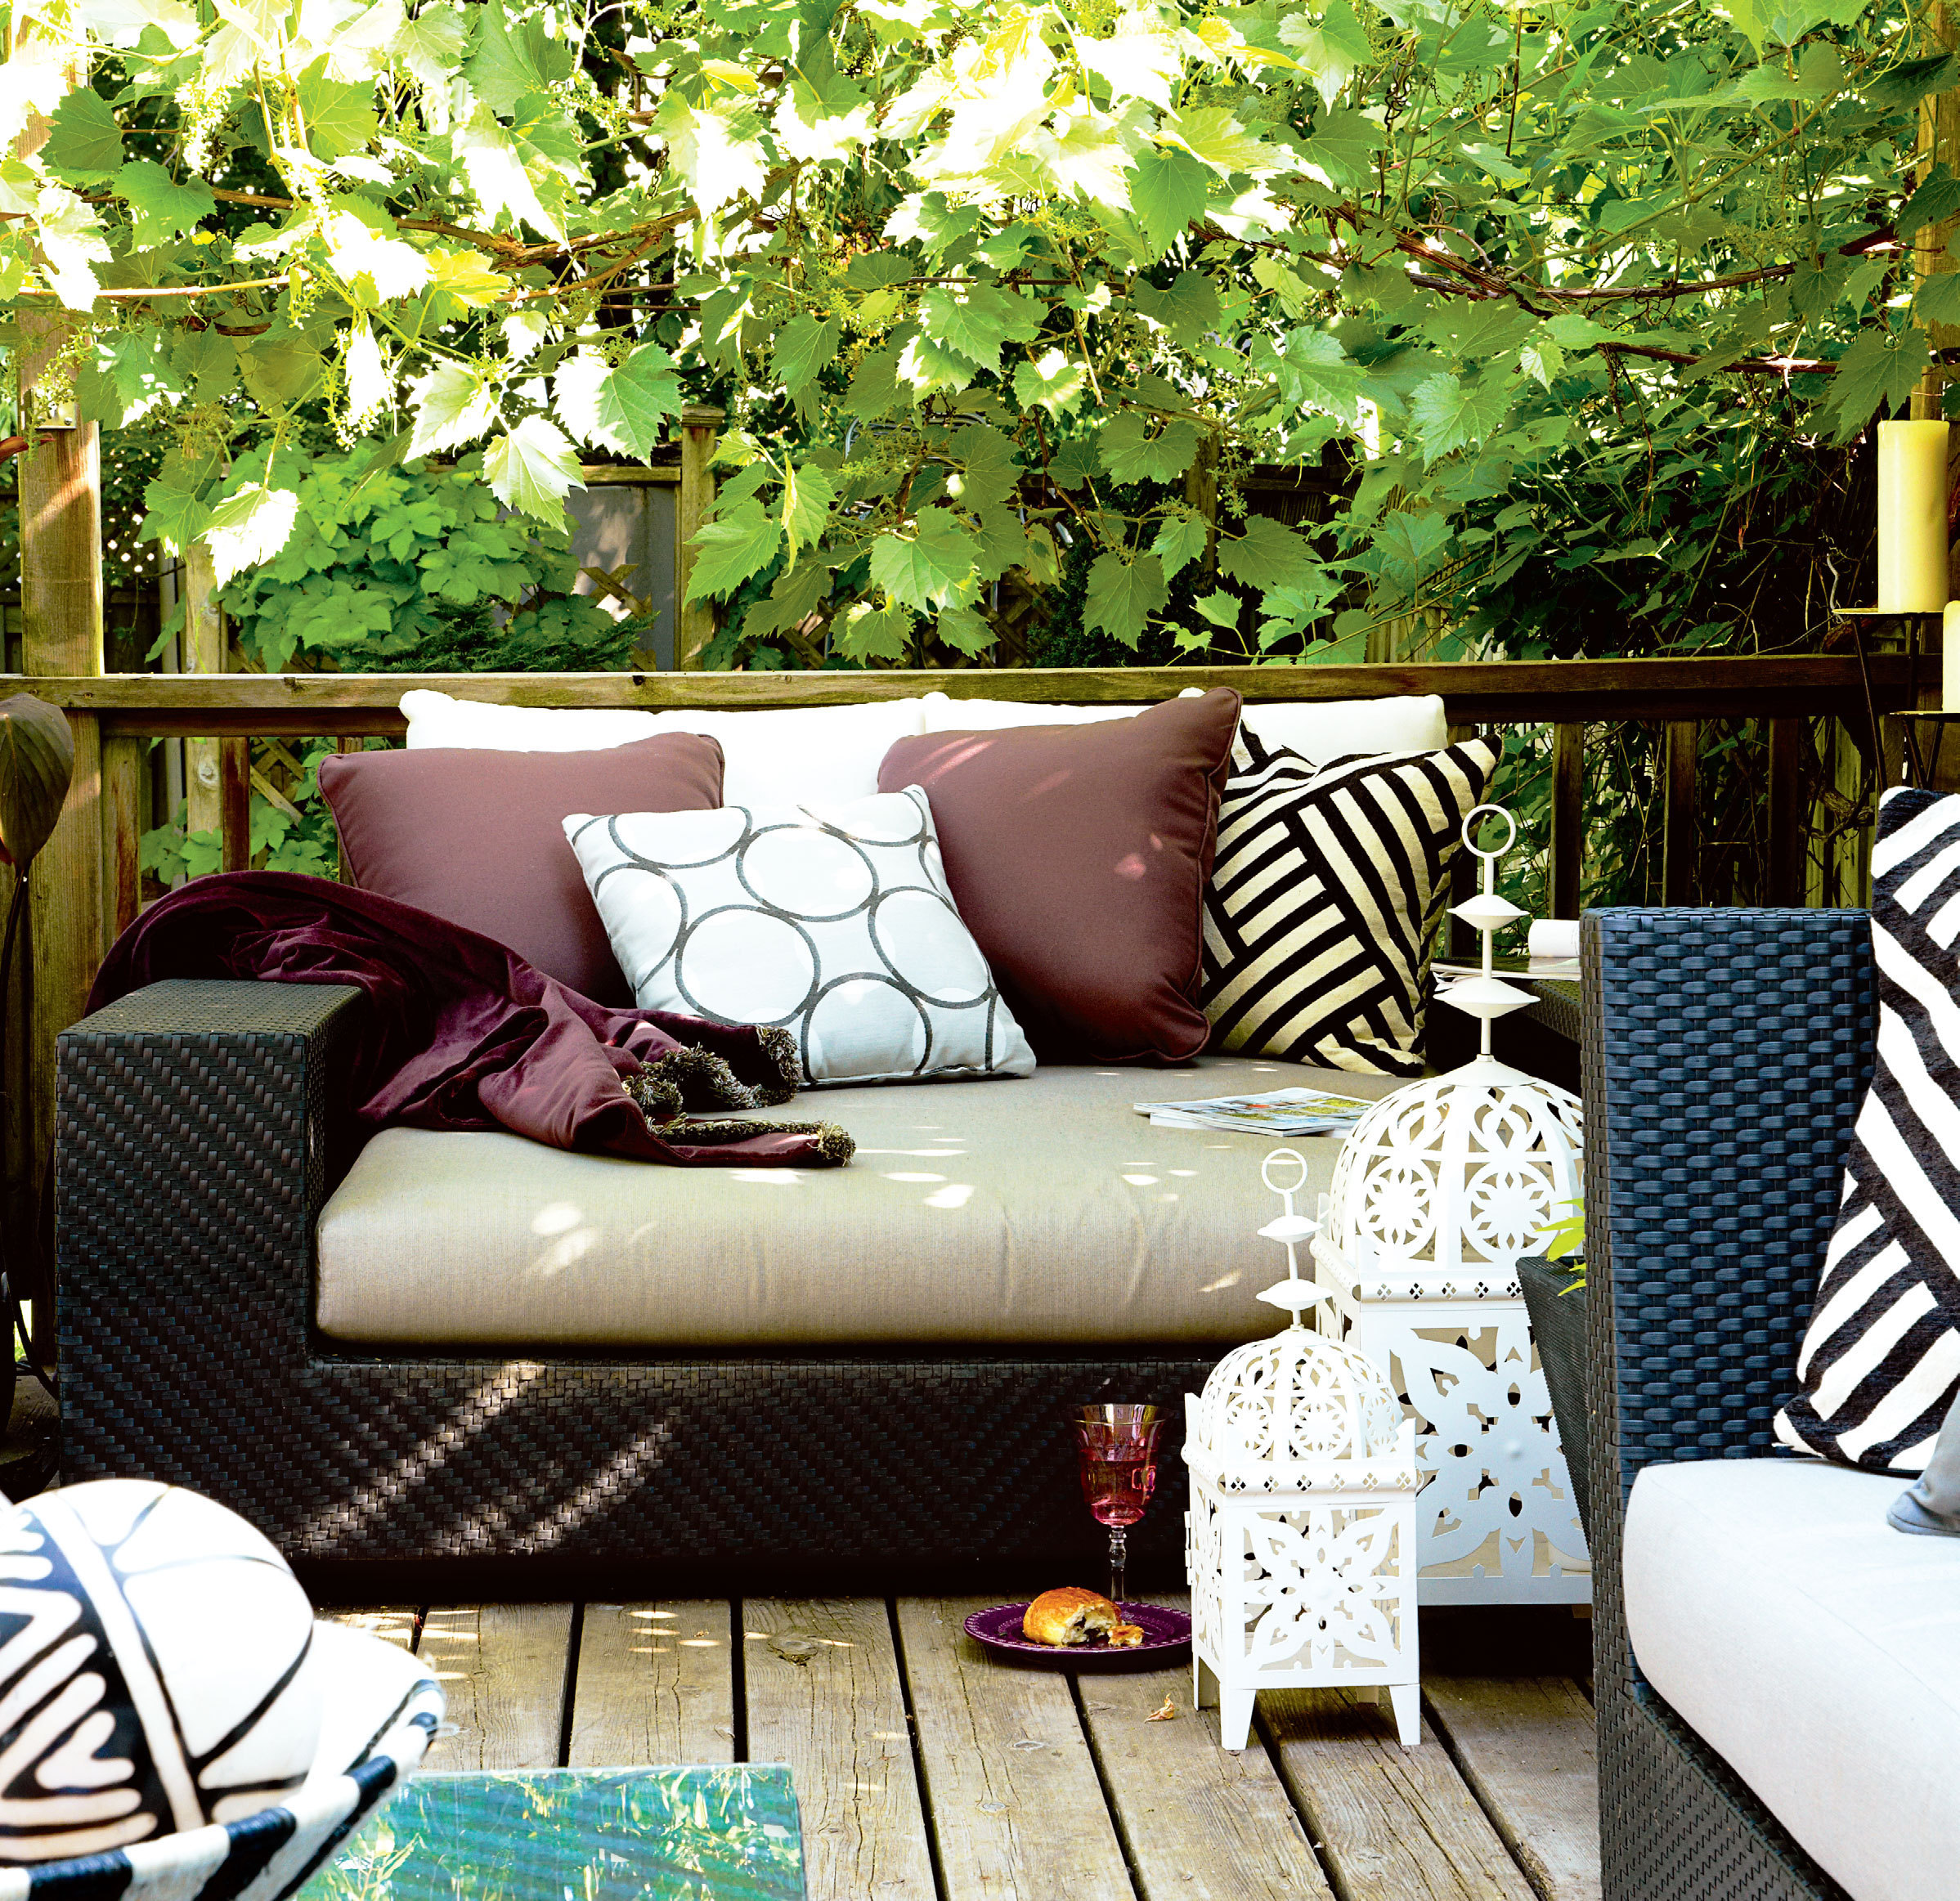 20 ways to spiff up your backyard for spring